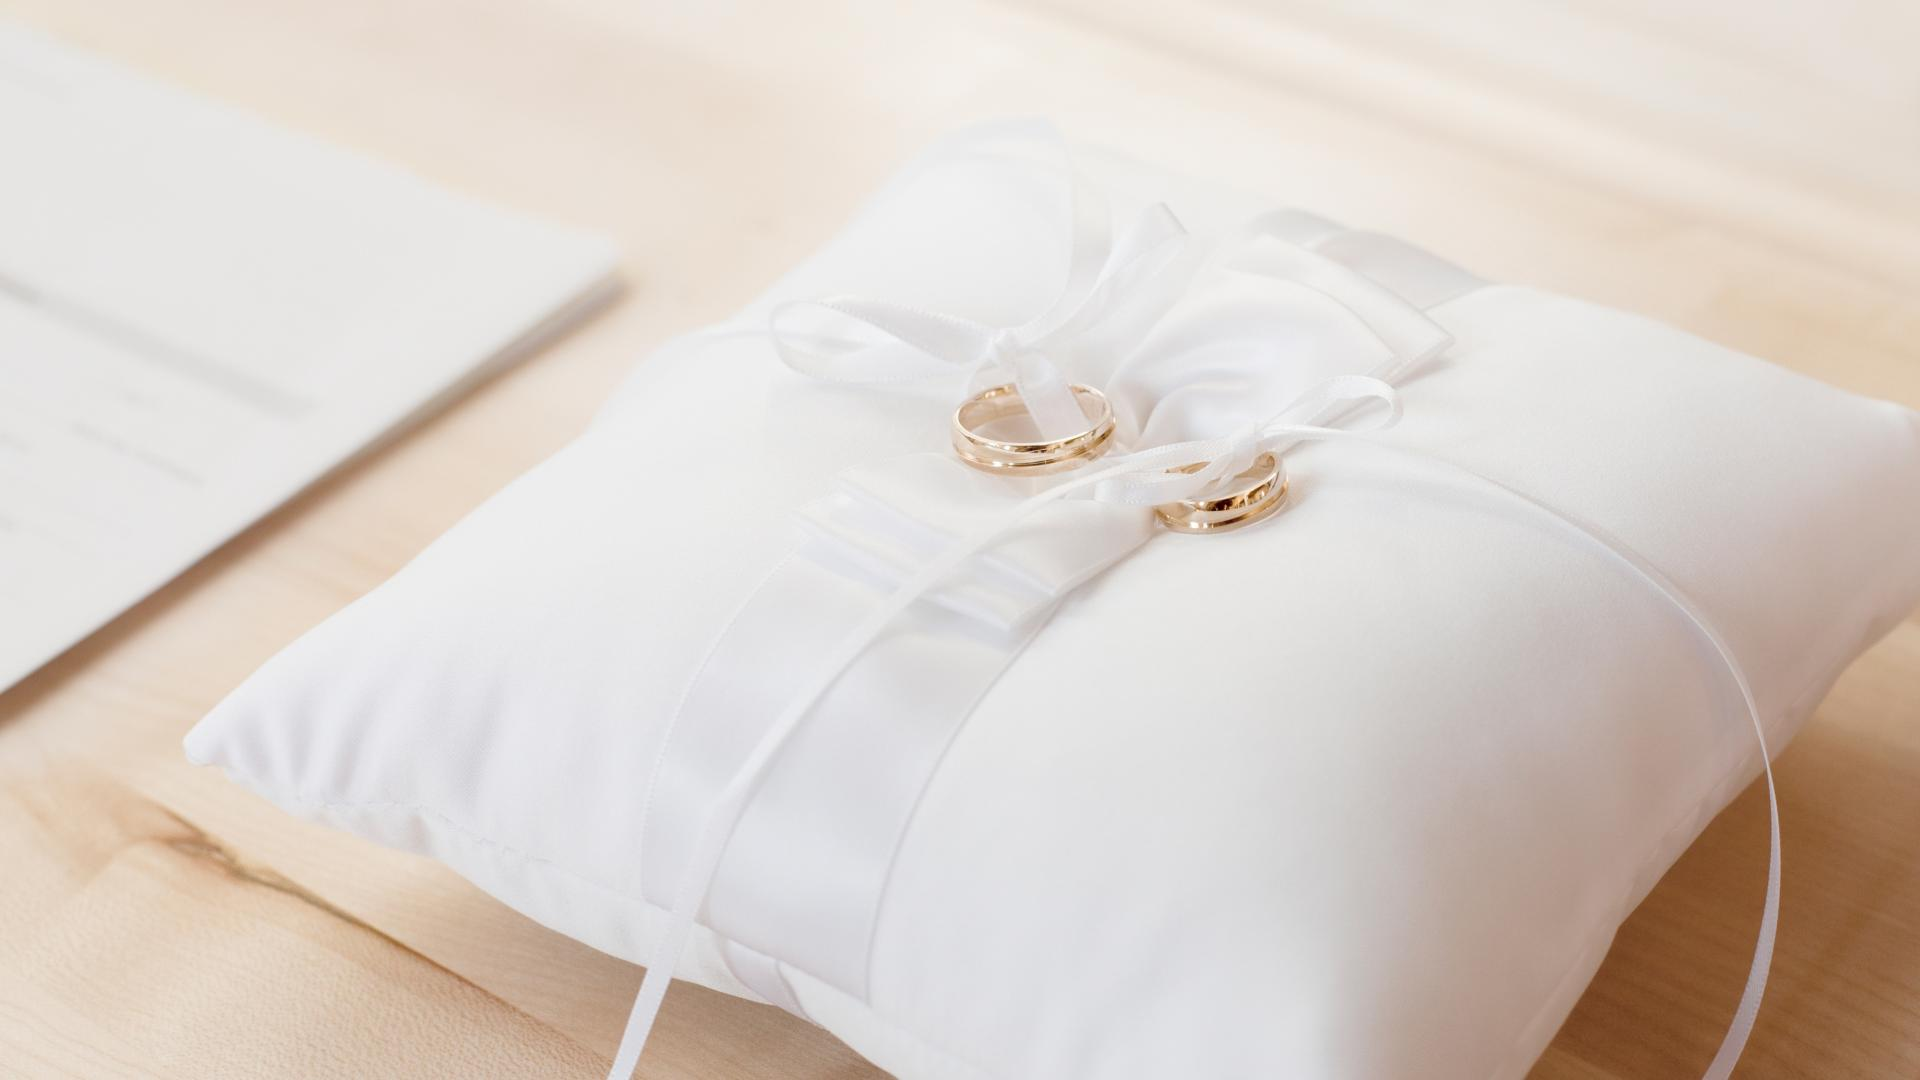 Testimonials Image of wedding rings on a beautiful pillow